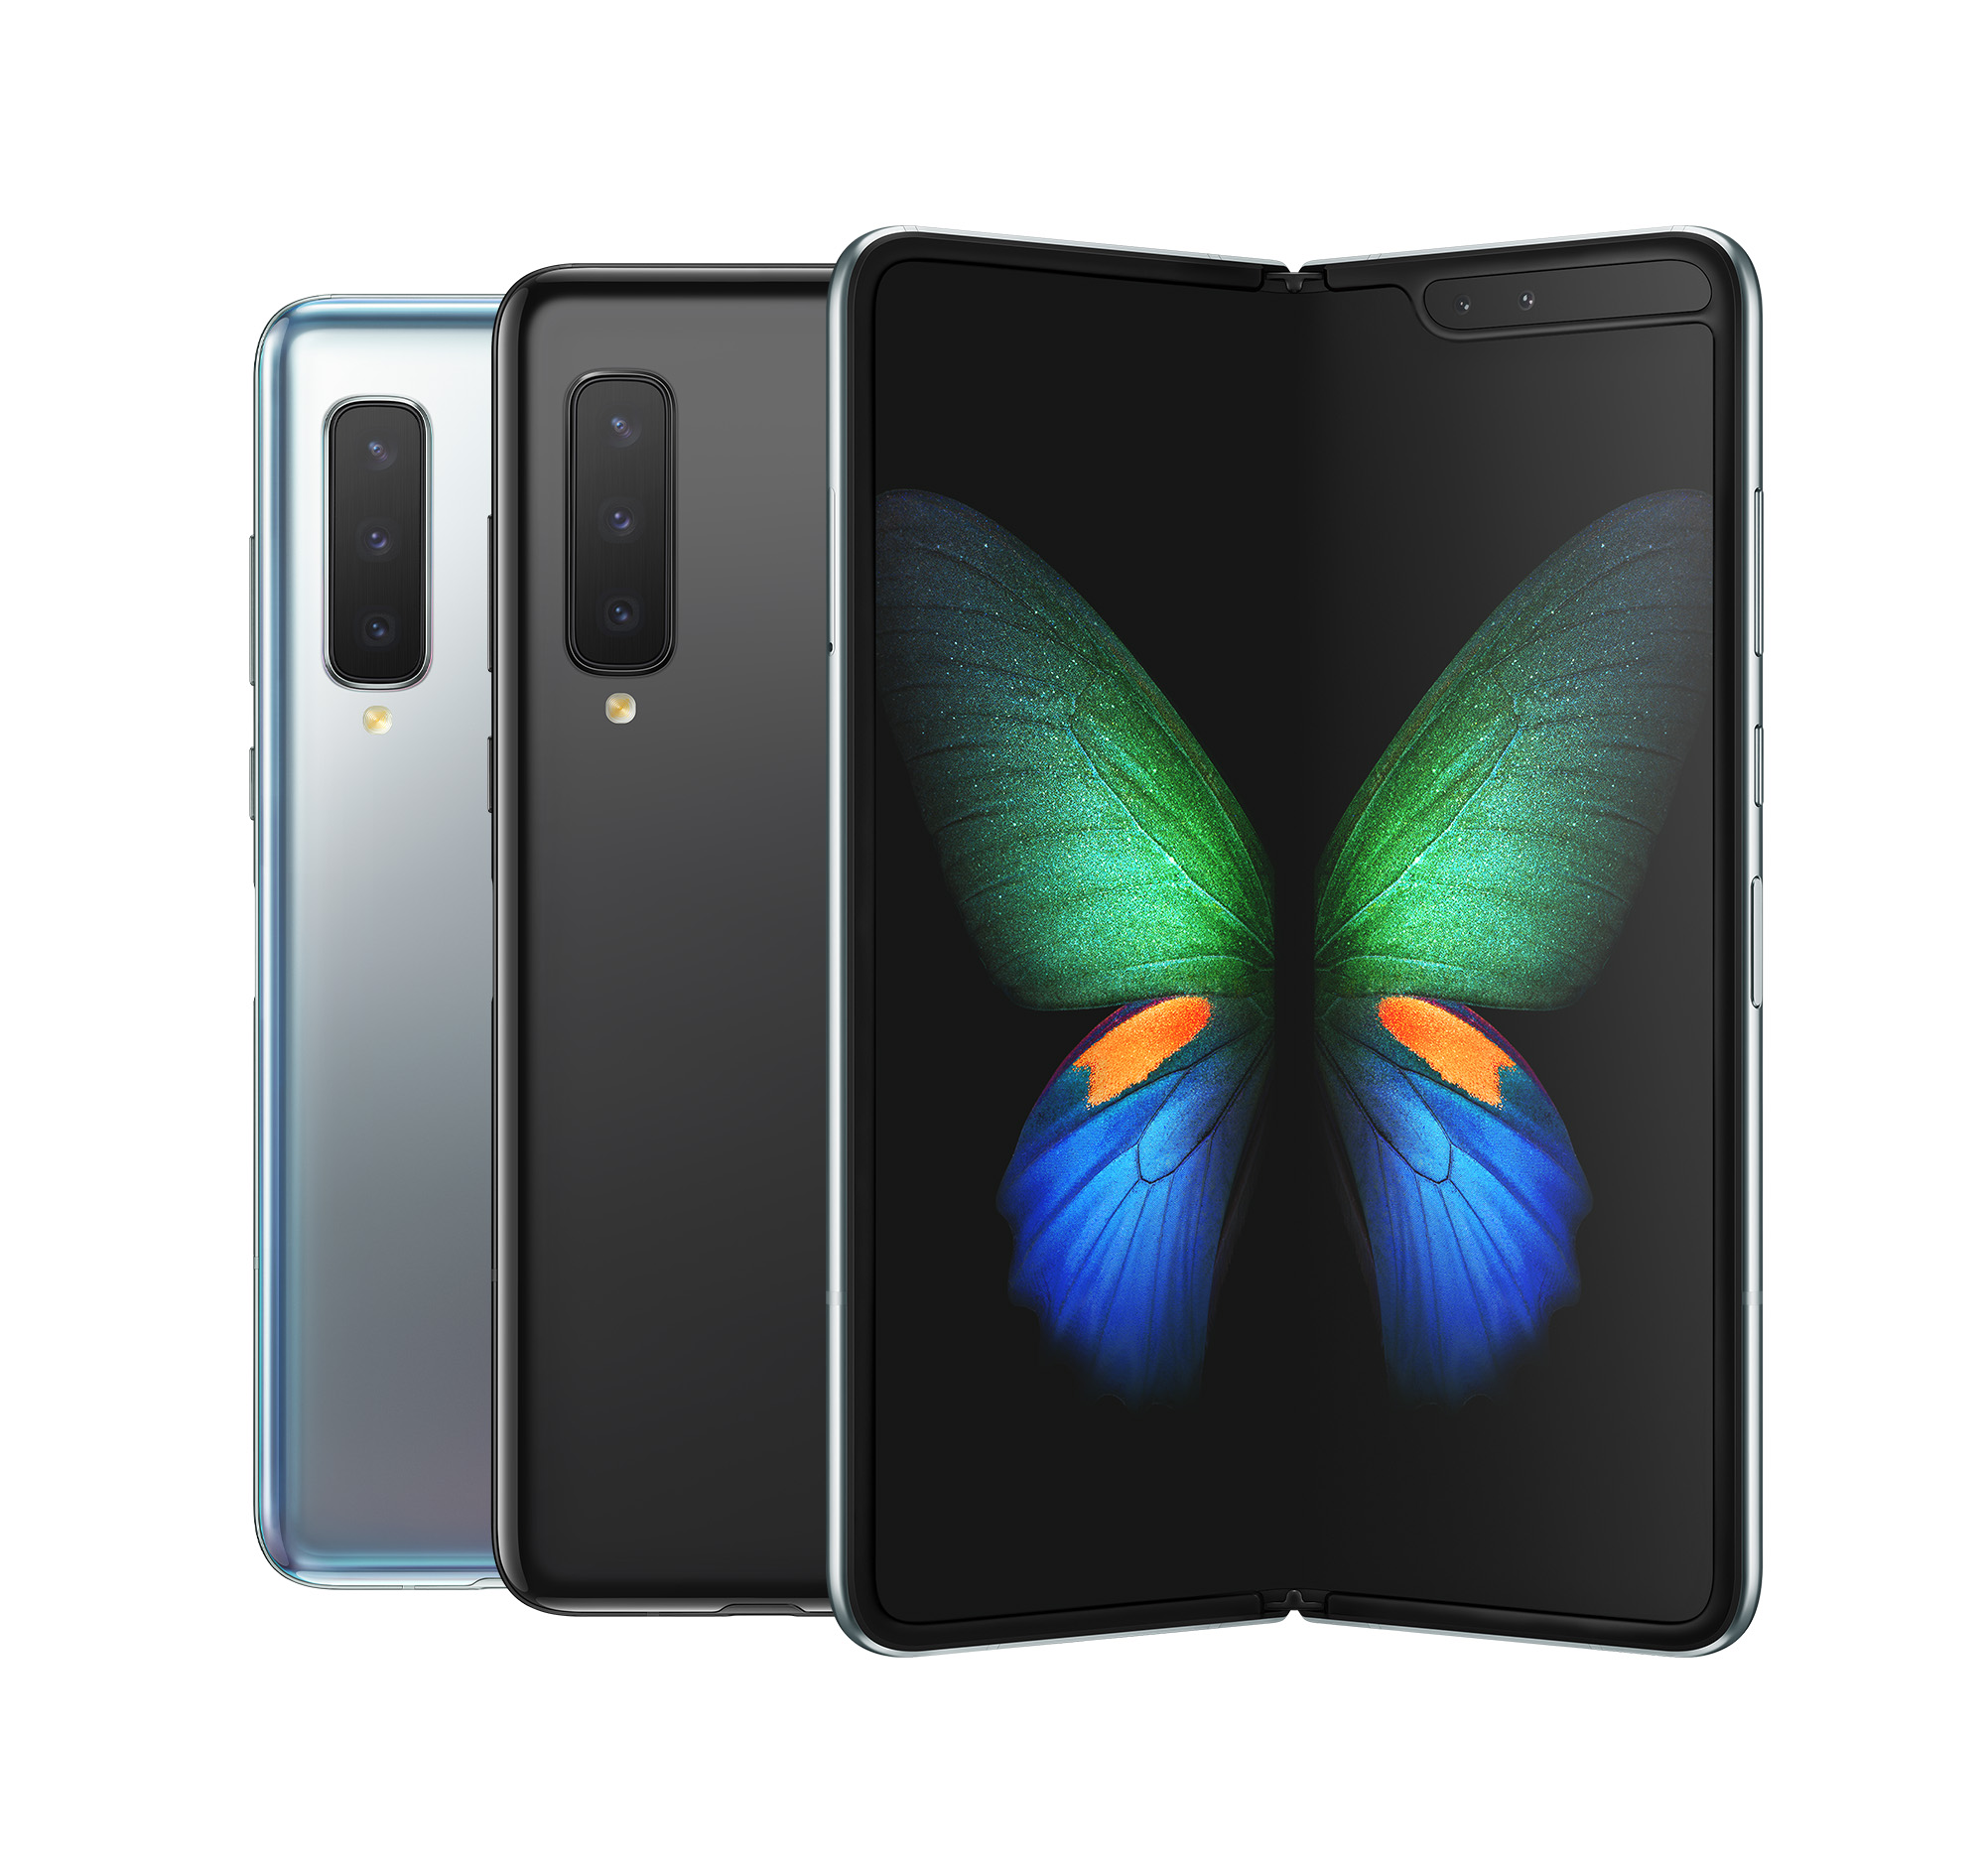 The Samsung Galaxy Fold comes in two colours: Space Silver and Cosmos Black.